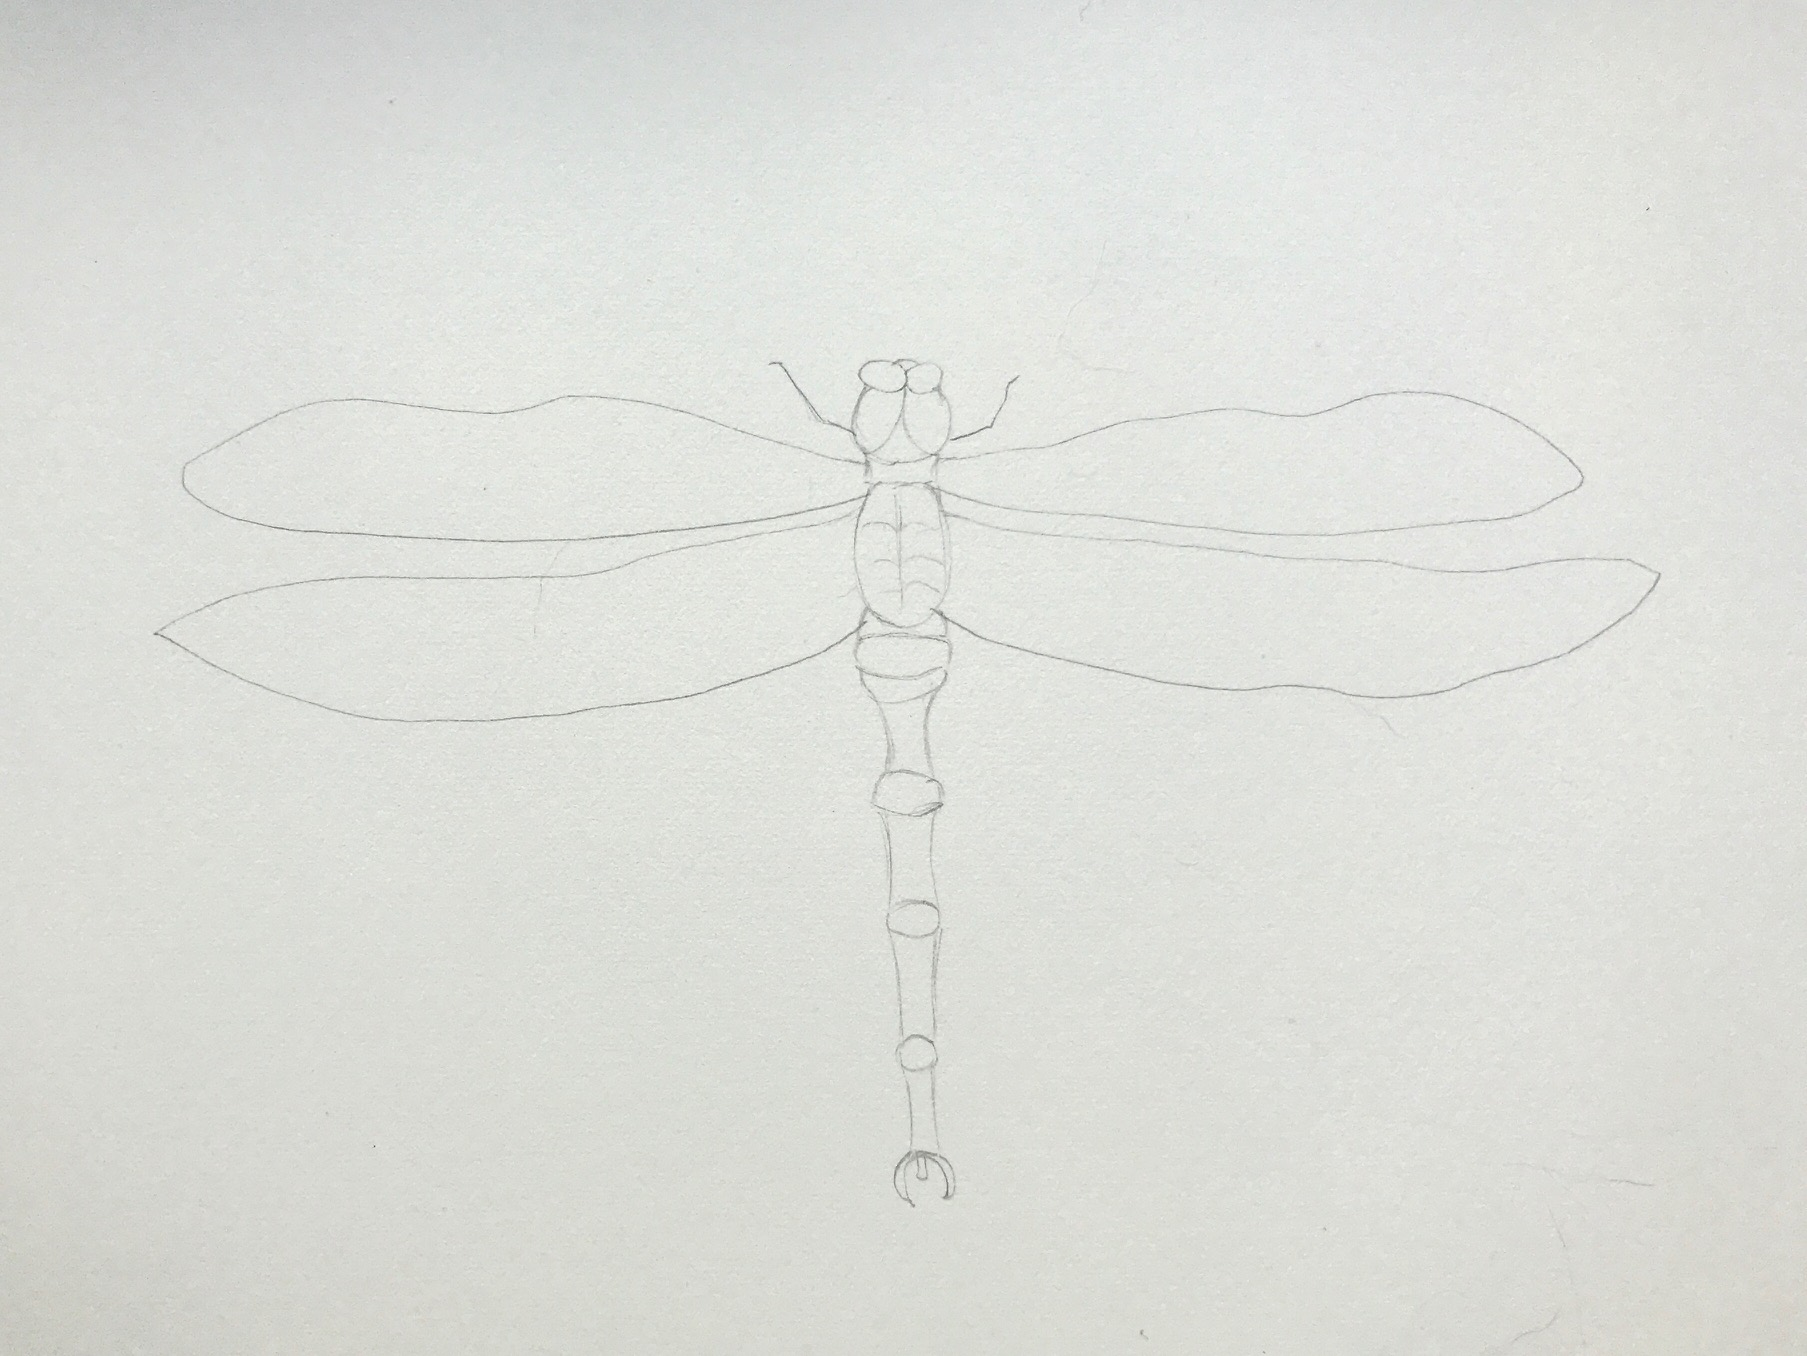 sketch dragonfly in pencil